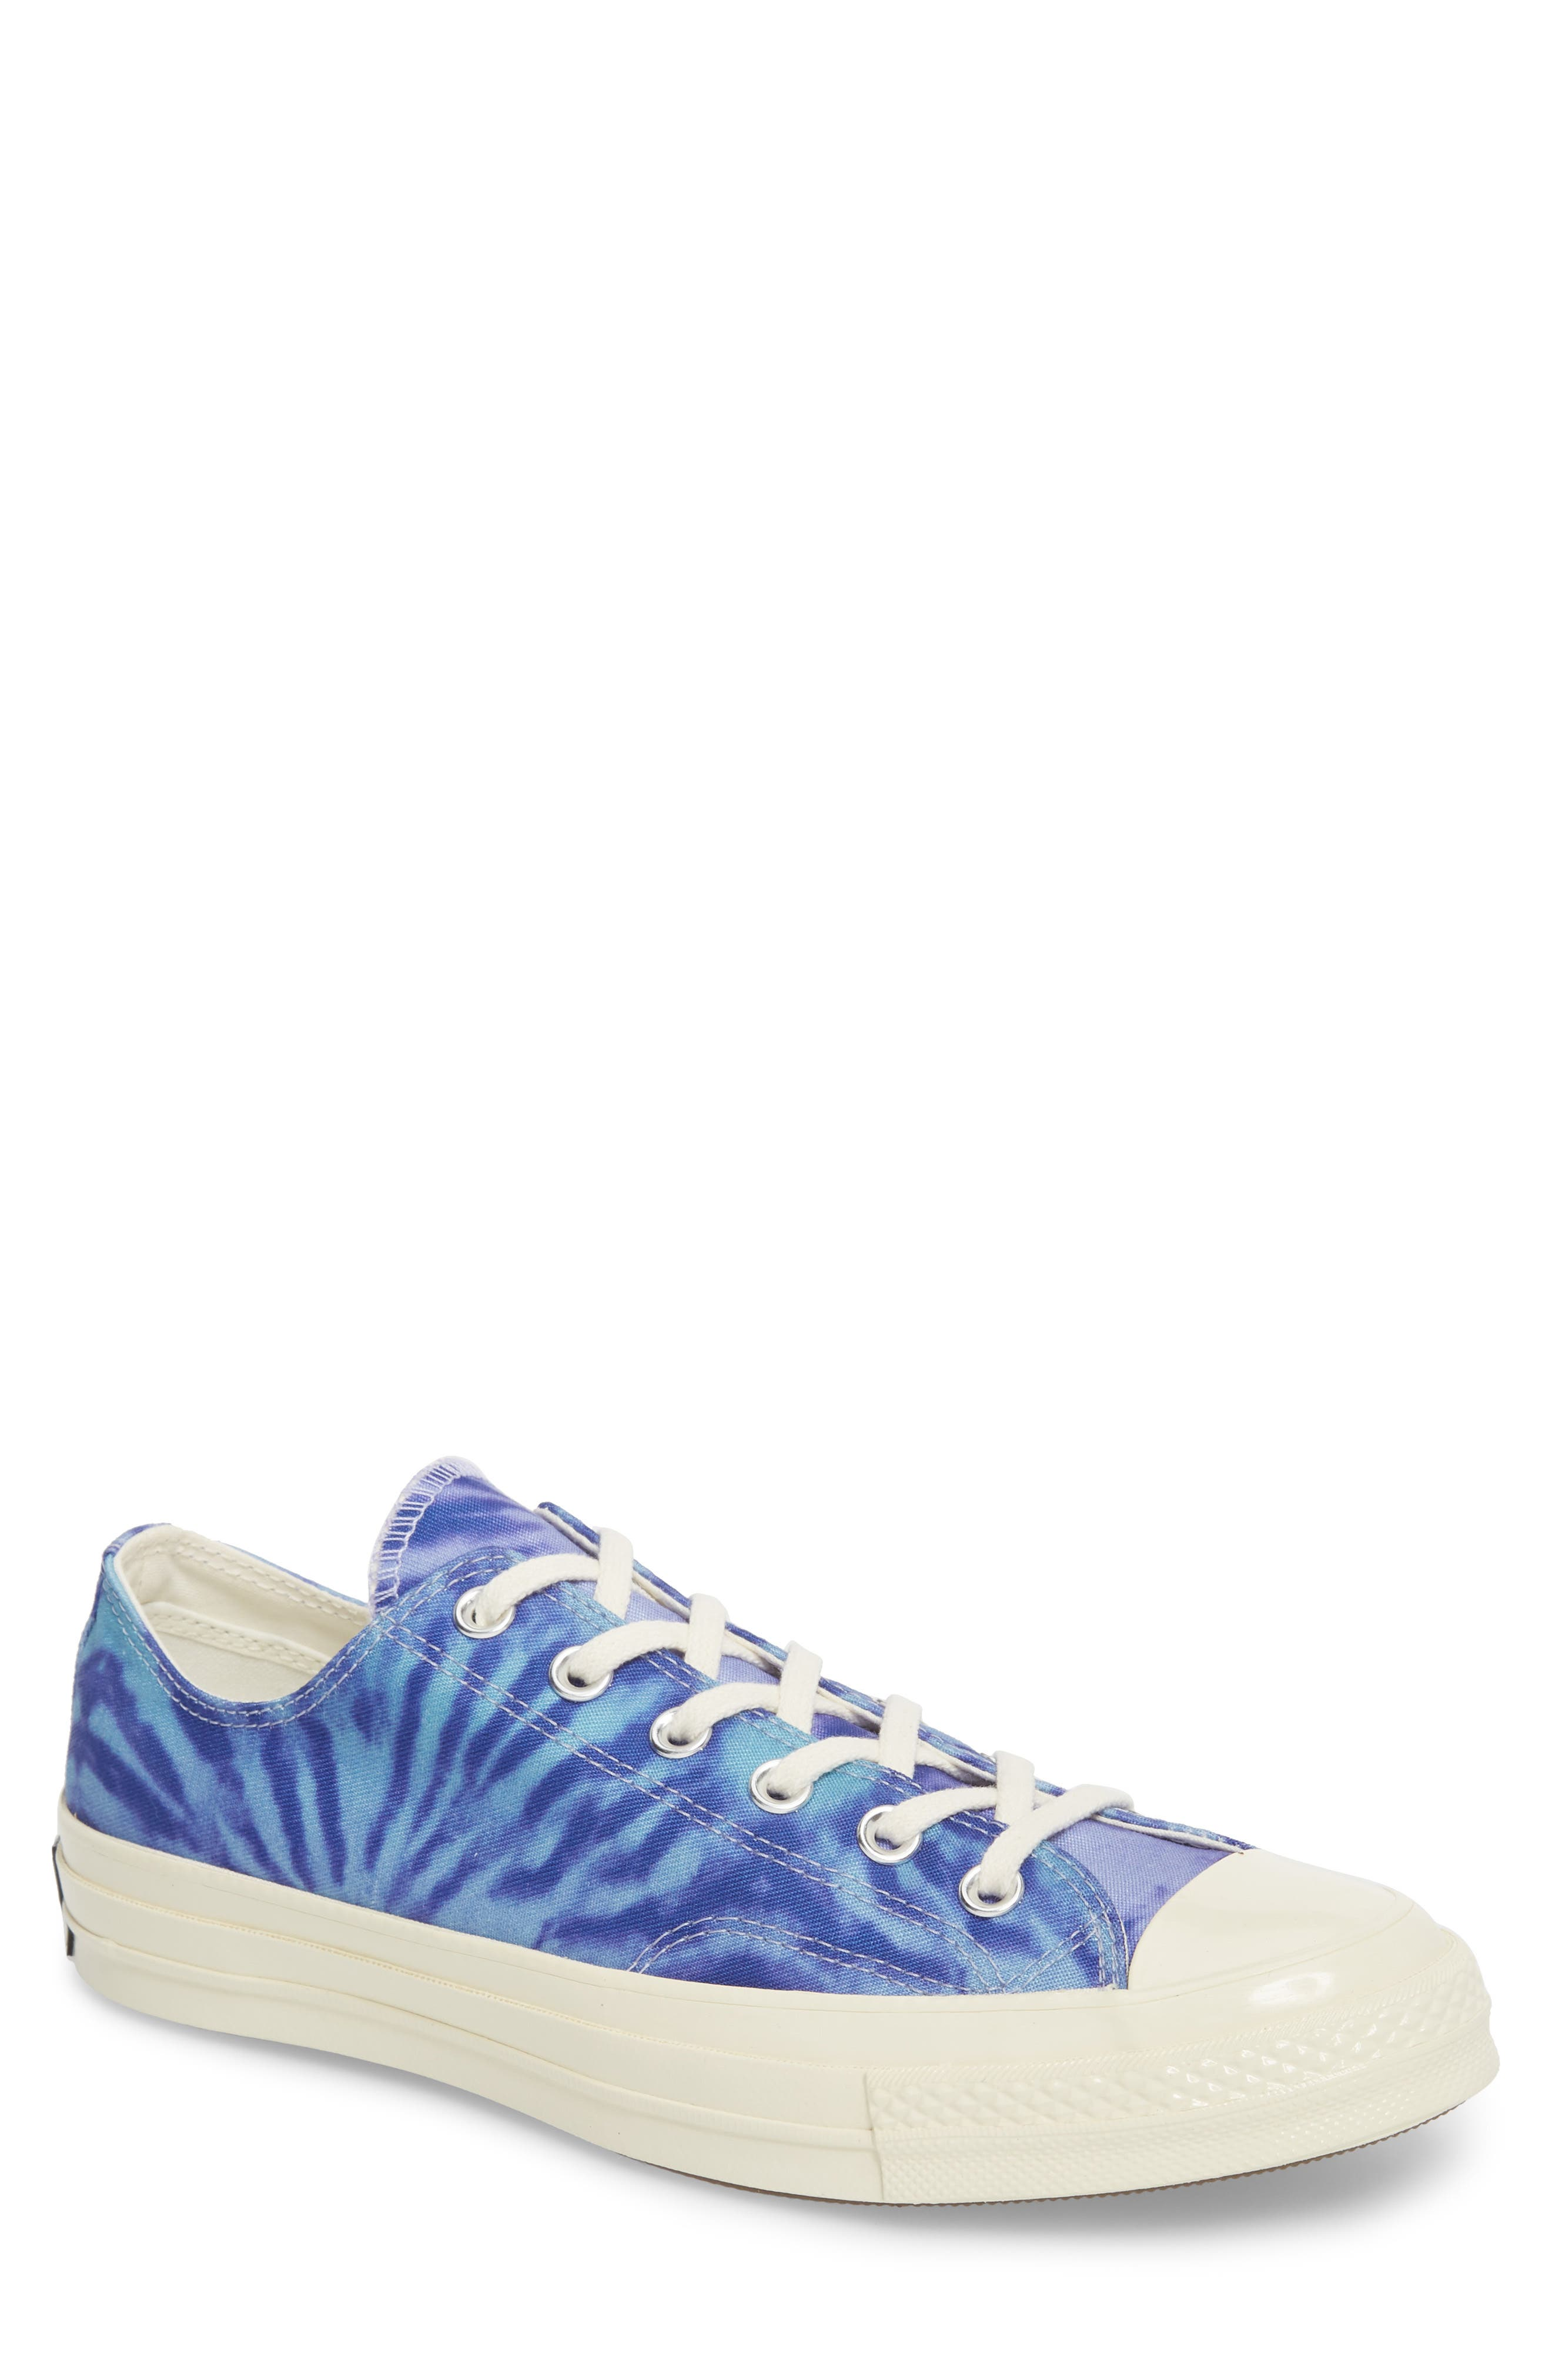 Converse Chuck Taylor® All Star® 70 Tie Dye Low Top Sneaker (Men)